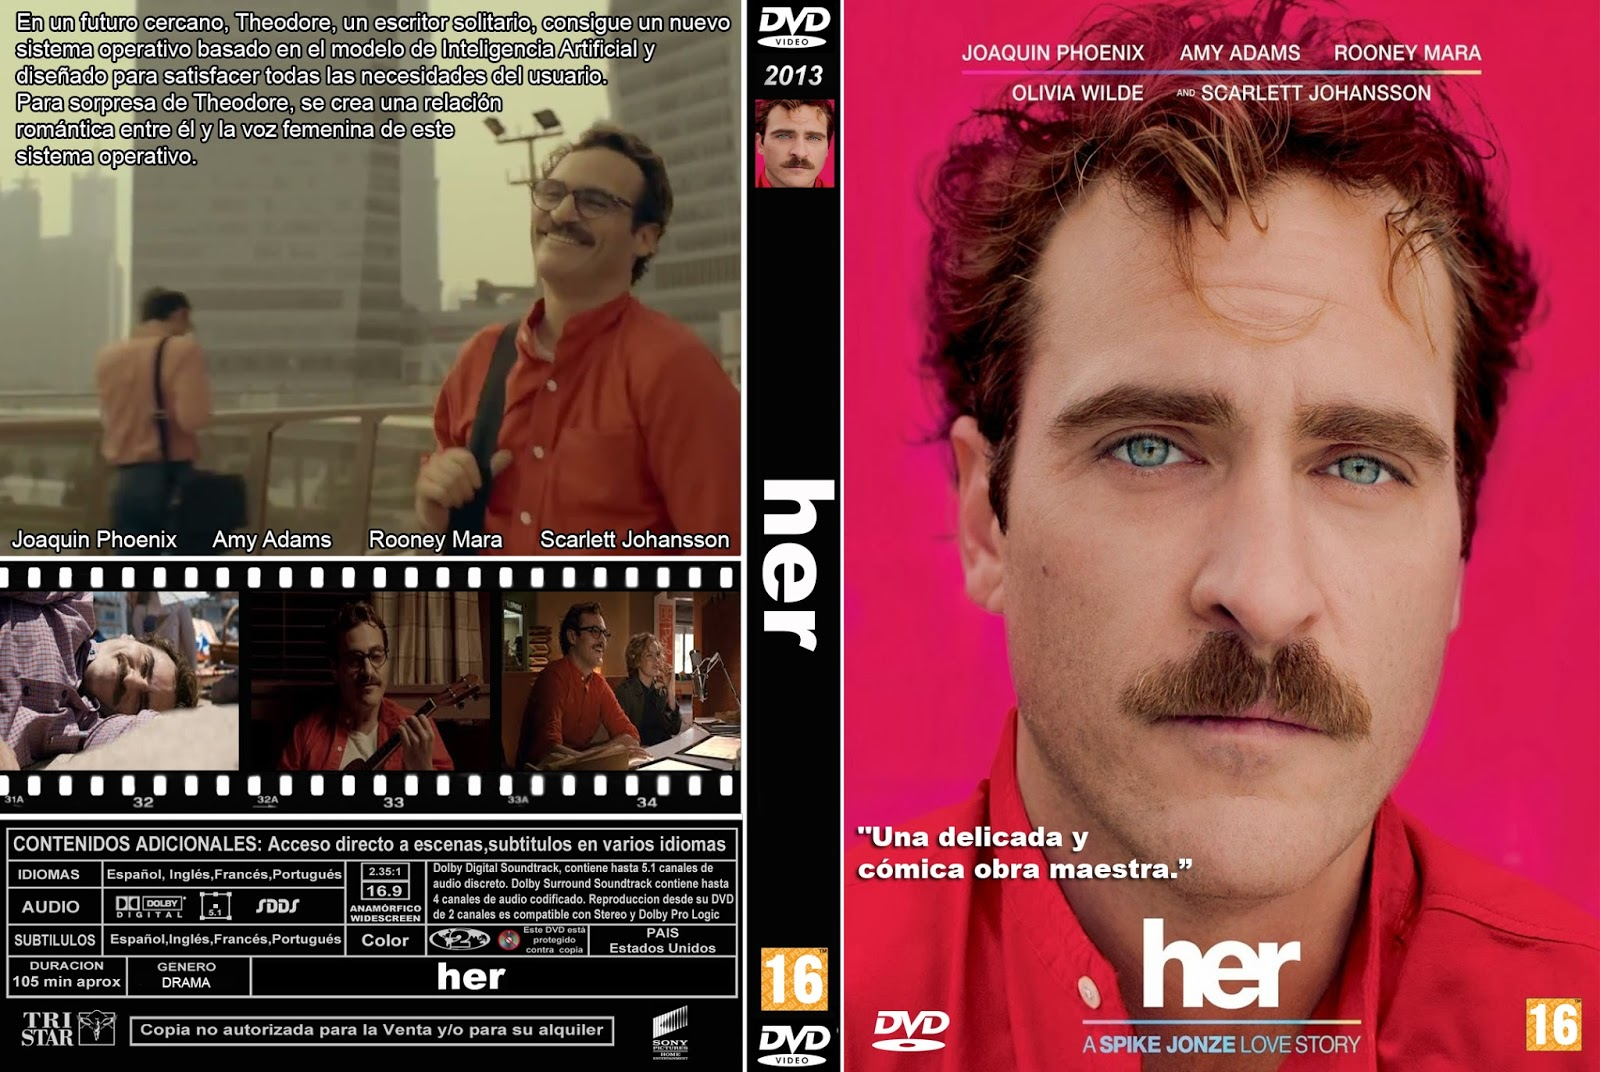 PB | DVD Cover / Caratula FREE: HER - DVD COVER 2013